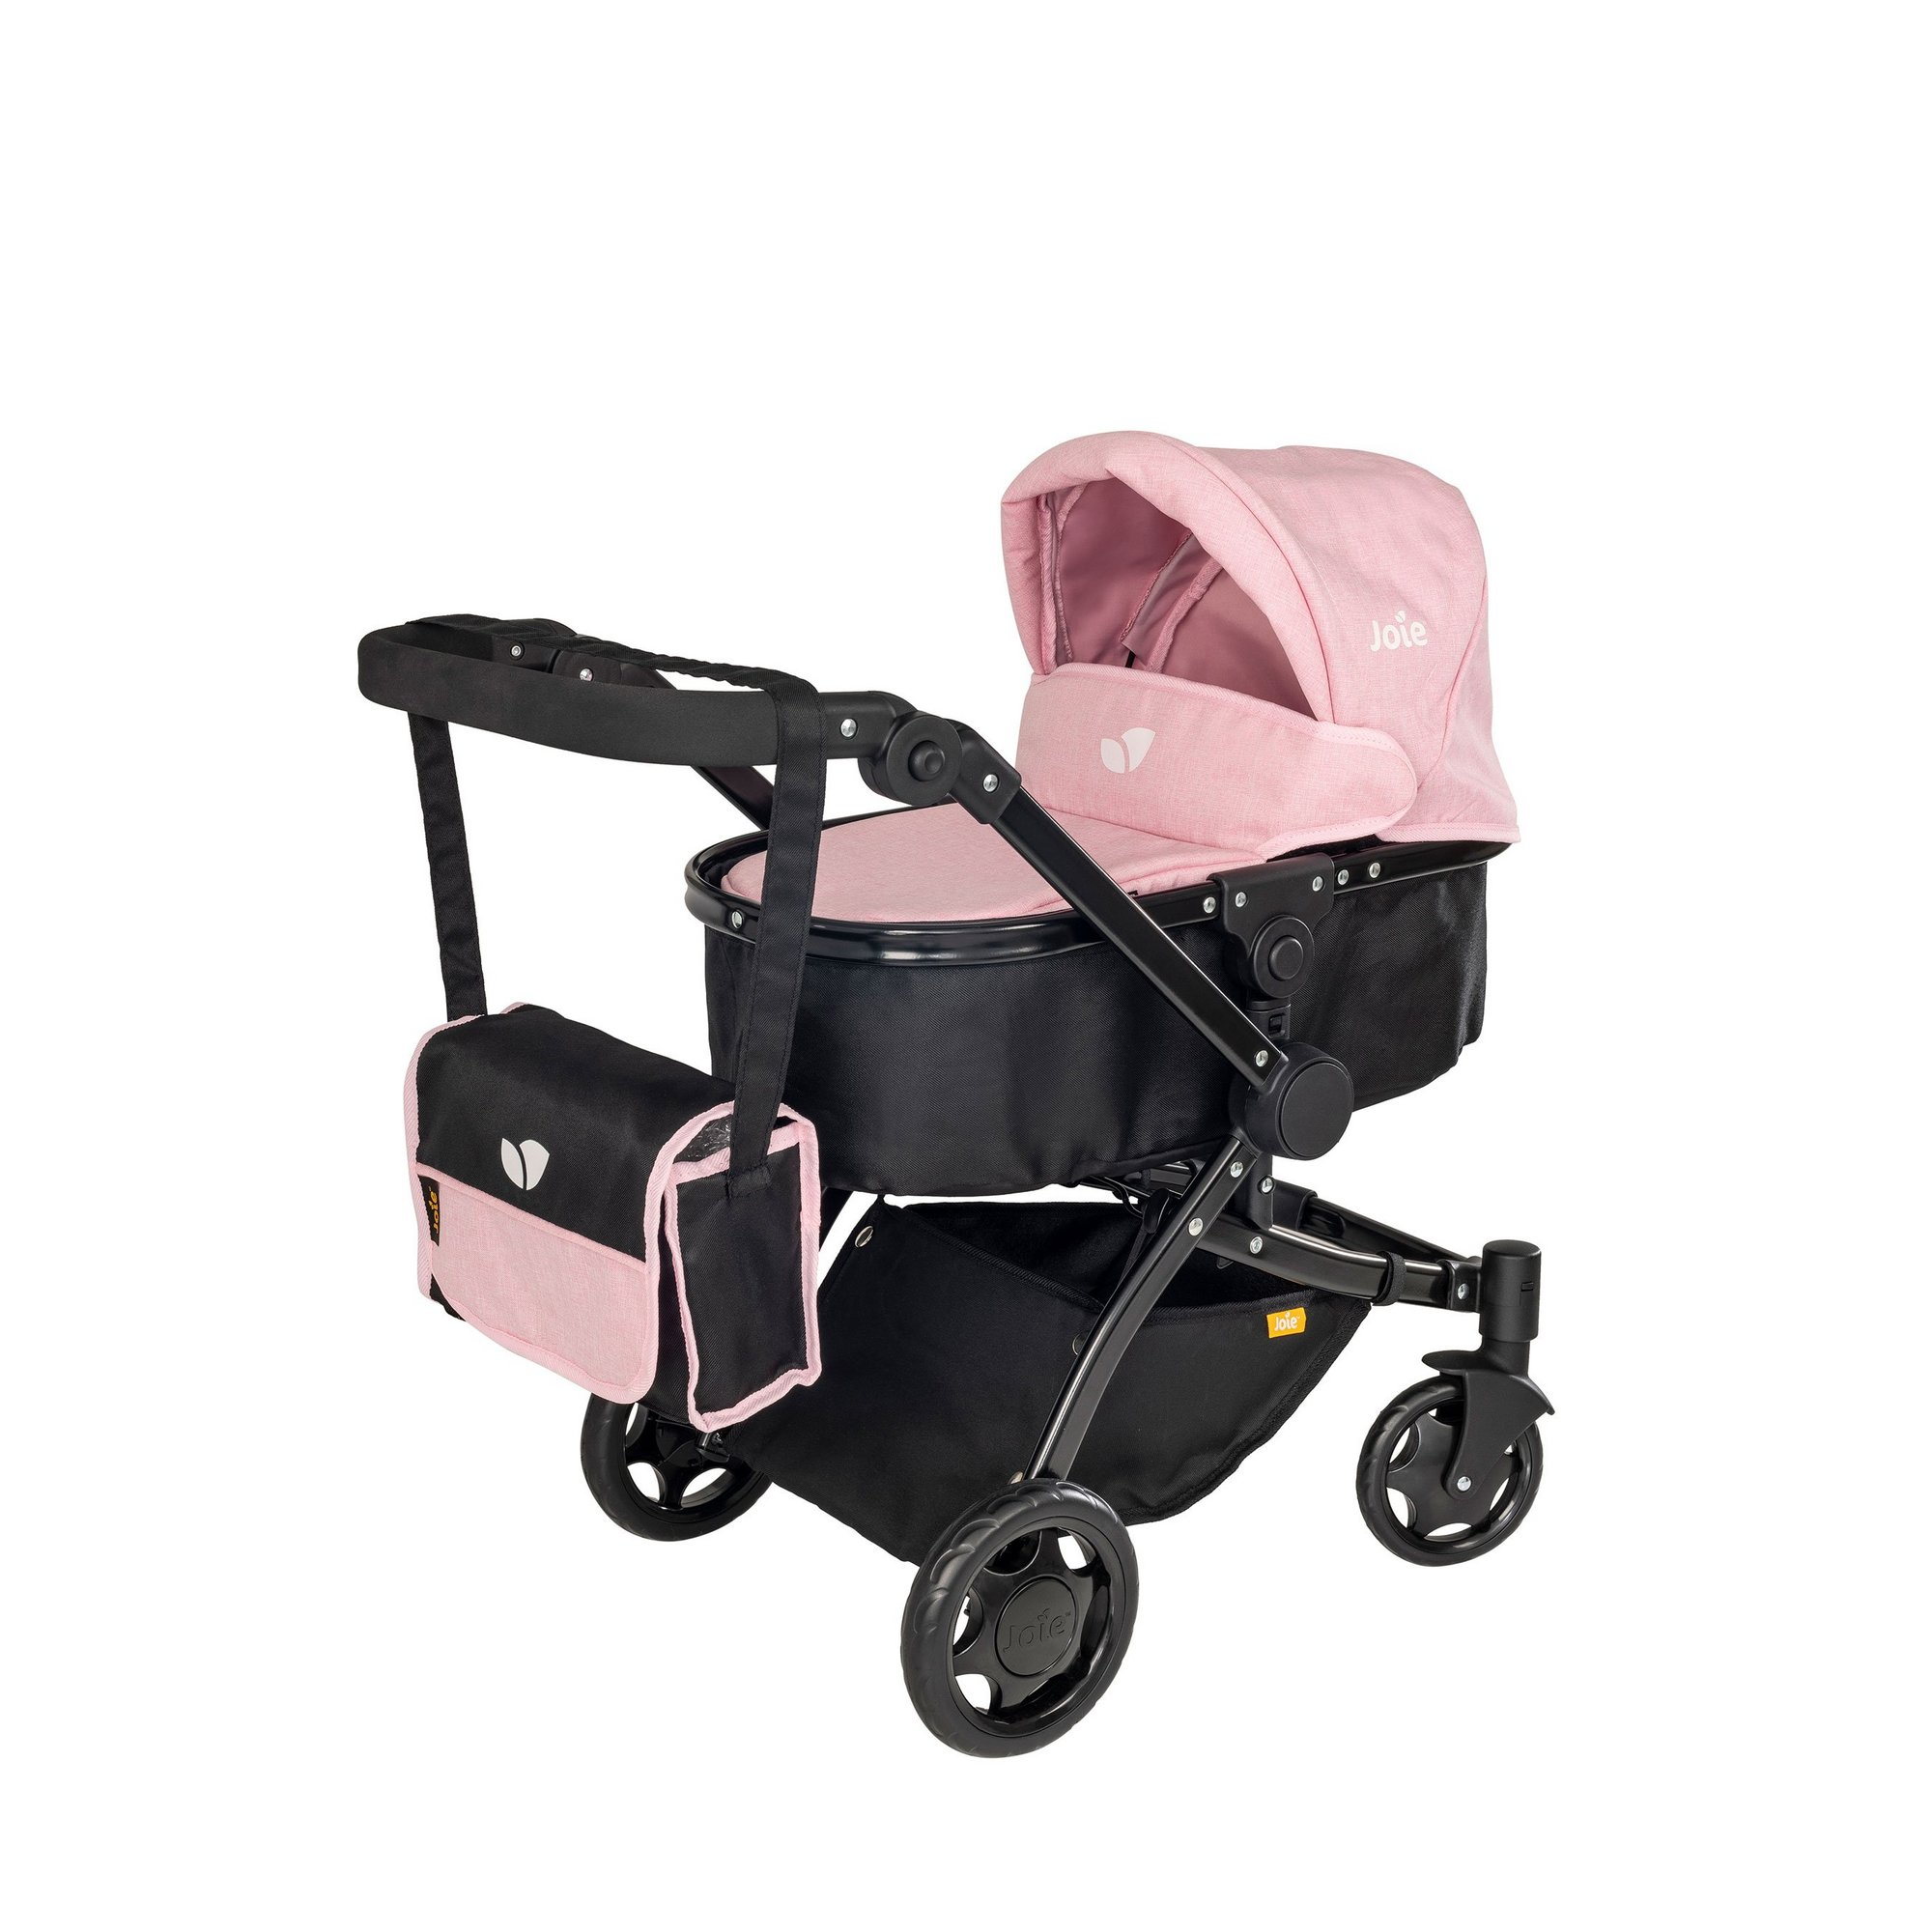 Image of Joie Junior Chrome 3-In-1 Pram